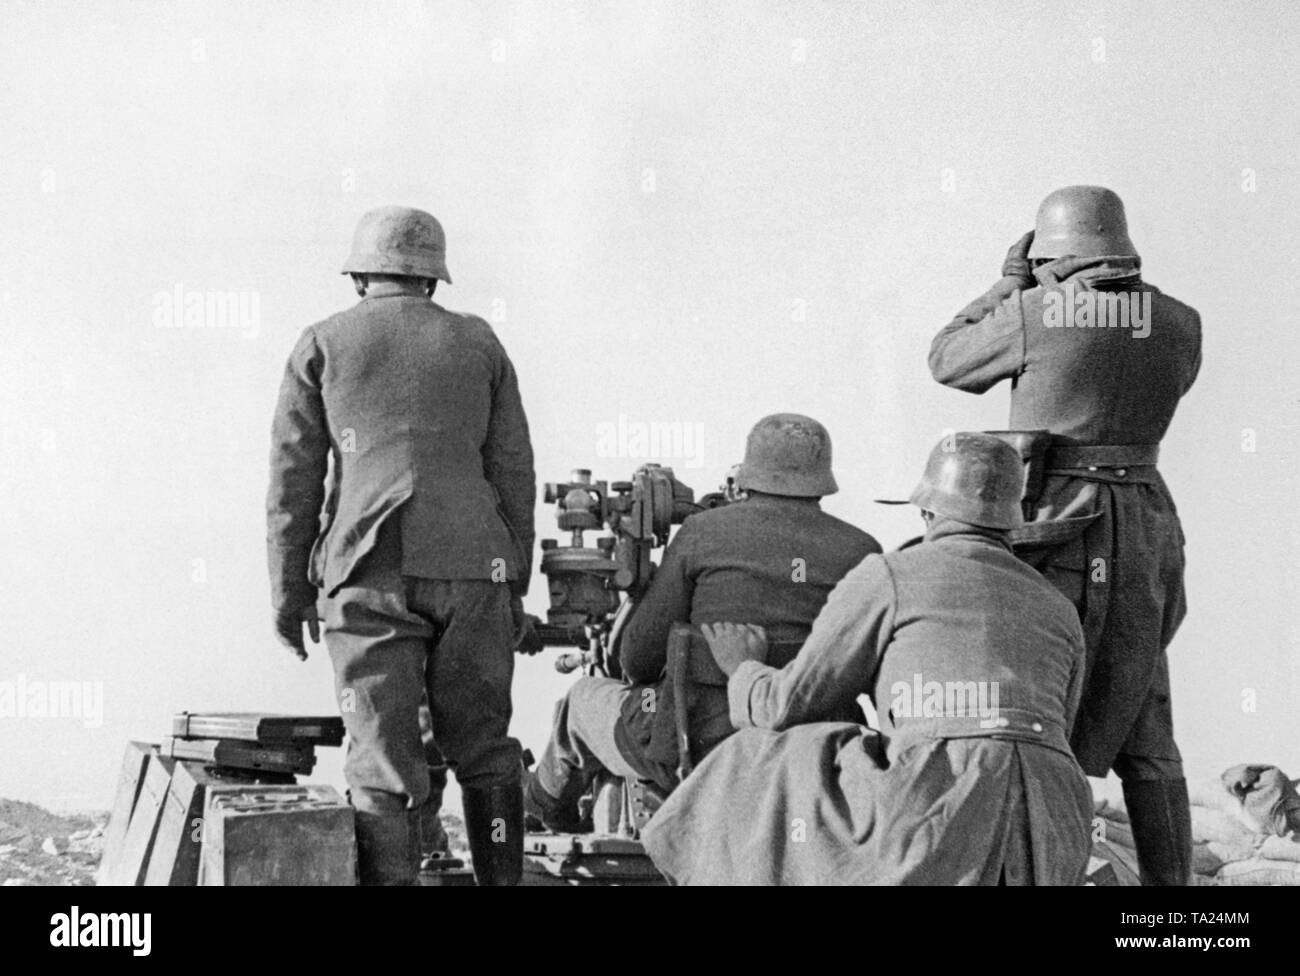 Undated photo of an anti-aircraft unit of the Condor Legion during a deployment in the Spanish Civil War. Two men are aiming at ground target using a 2cm FLAK 39 in a sandbag position. An officer (left) picks the targets. On the left in the front, there are crates of ammunition.The soldiers are wearing M35 steel helmets. - Stock Image